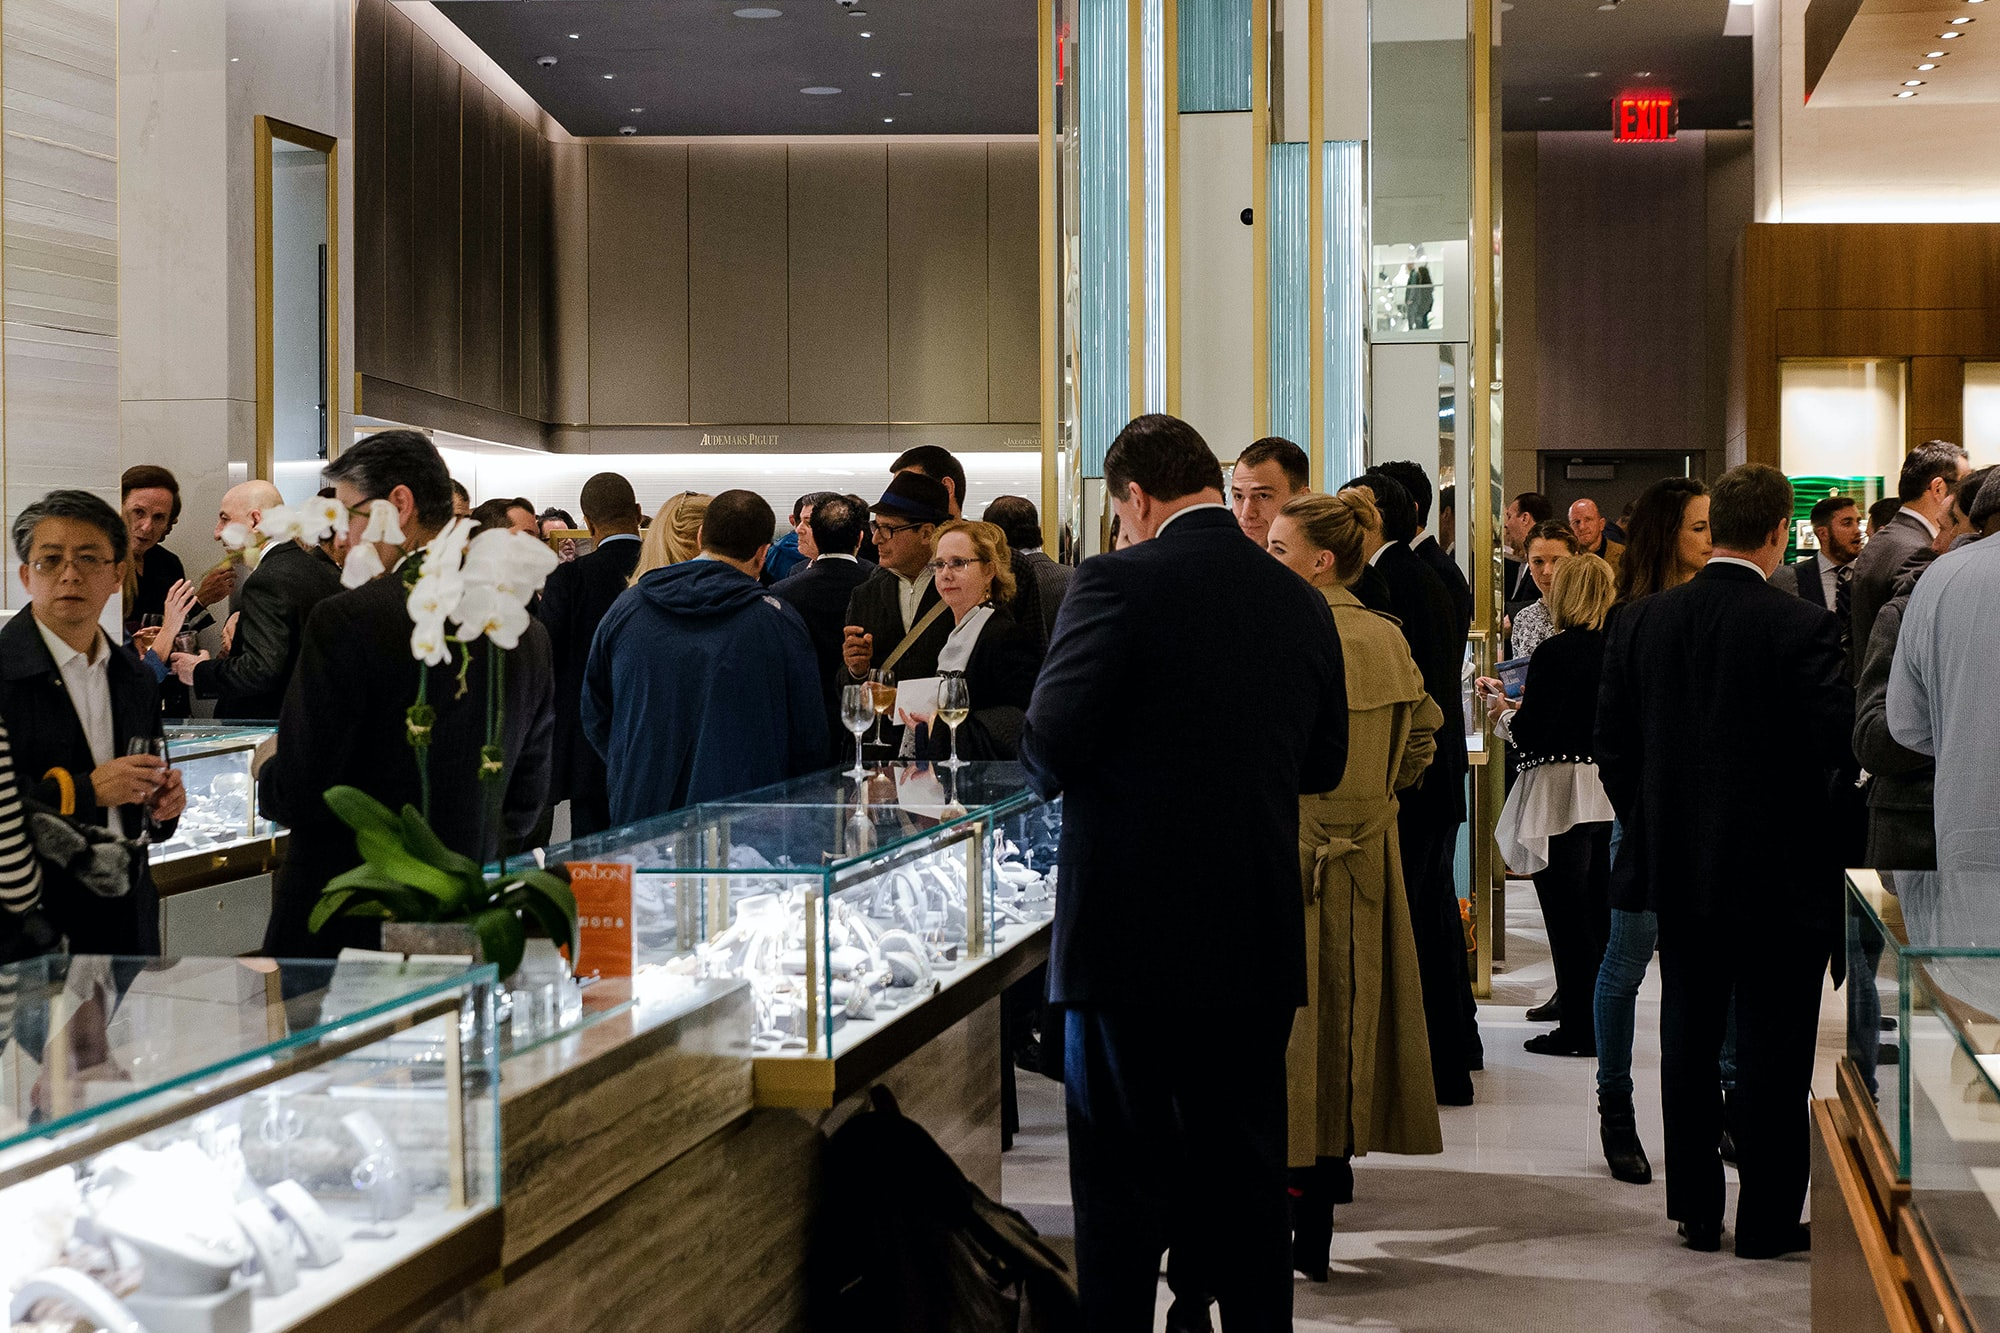 Photo Report: HODINKEE Celebrates London Jewelers' New Store In New York City's Oculus Photo Report: HODINKEE Celebrates London Jewelers' New Store In New York City's Oculus 20161109 LondonJewelersxHodinkee 108